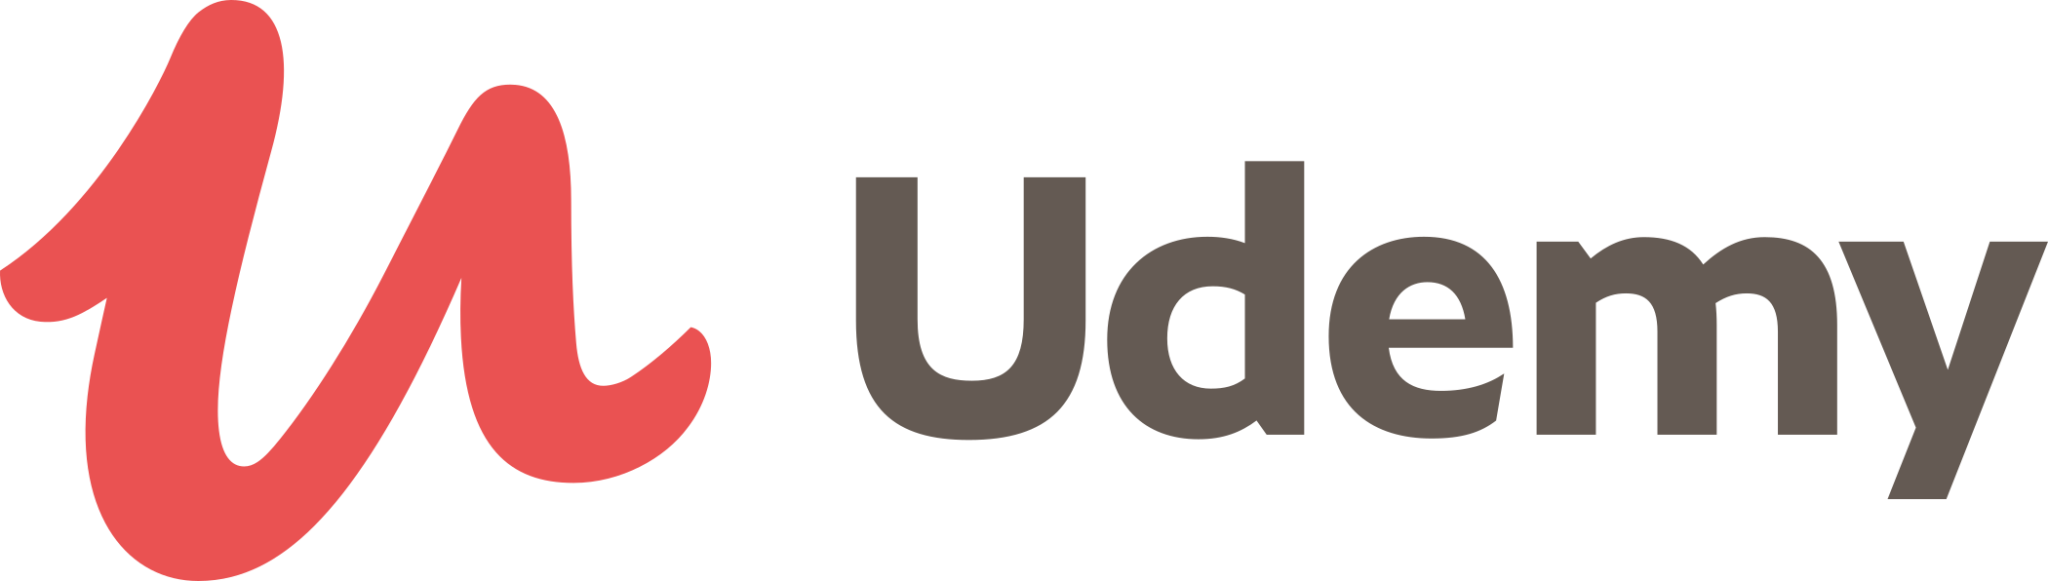 udemy-logo-1-2048x581